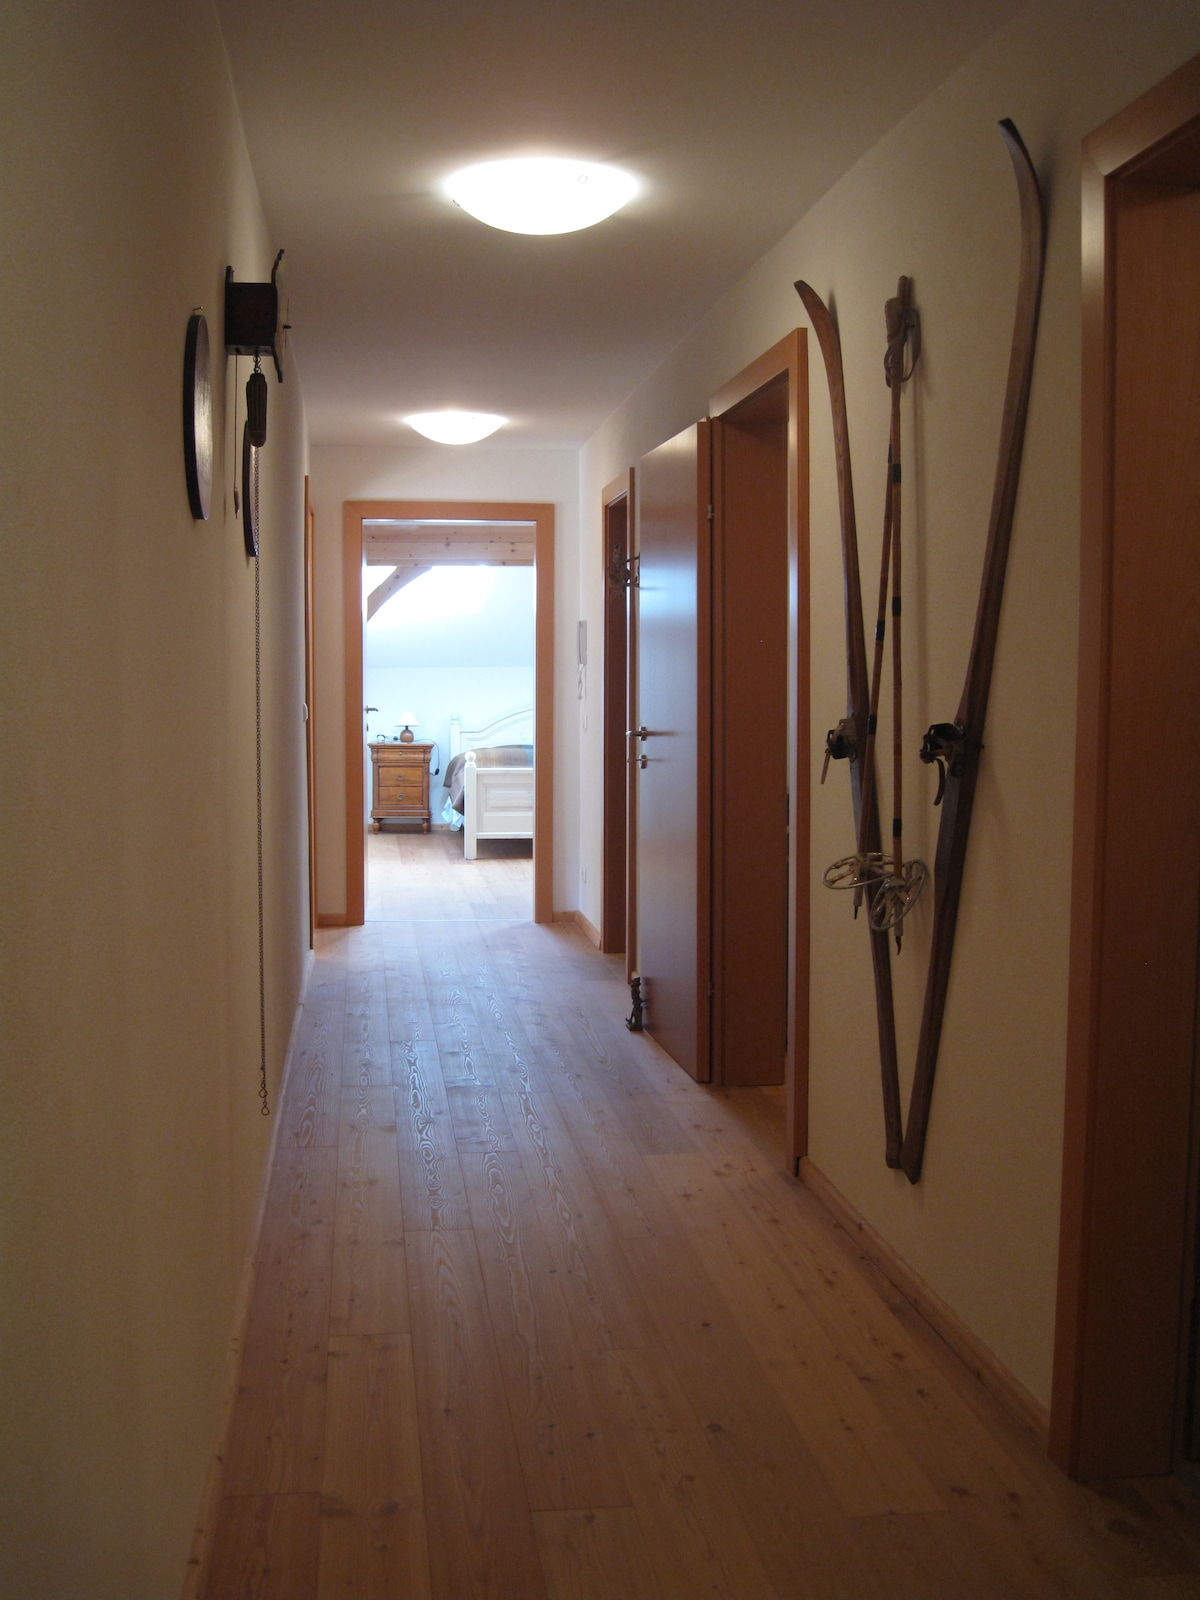 Entrance/Corridor 3 bedrooms with private bathrooms each 1 bathroom 1 bedroom 1 kitchen and living space 1 balcony